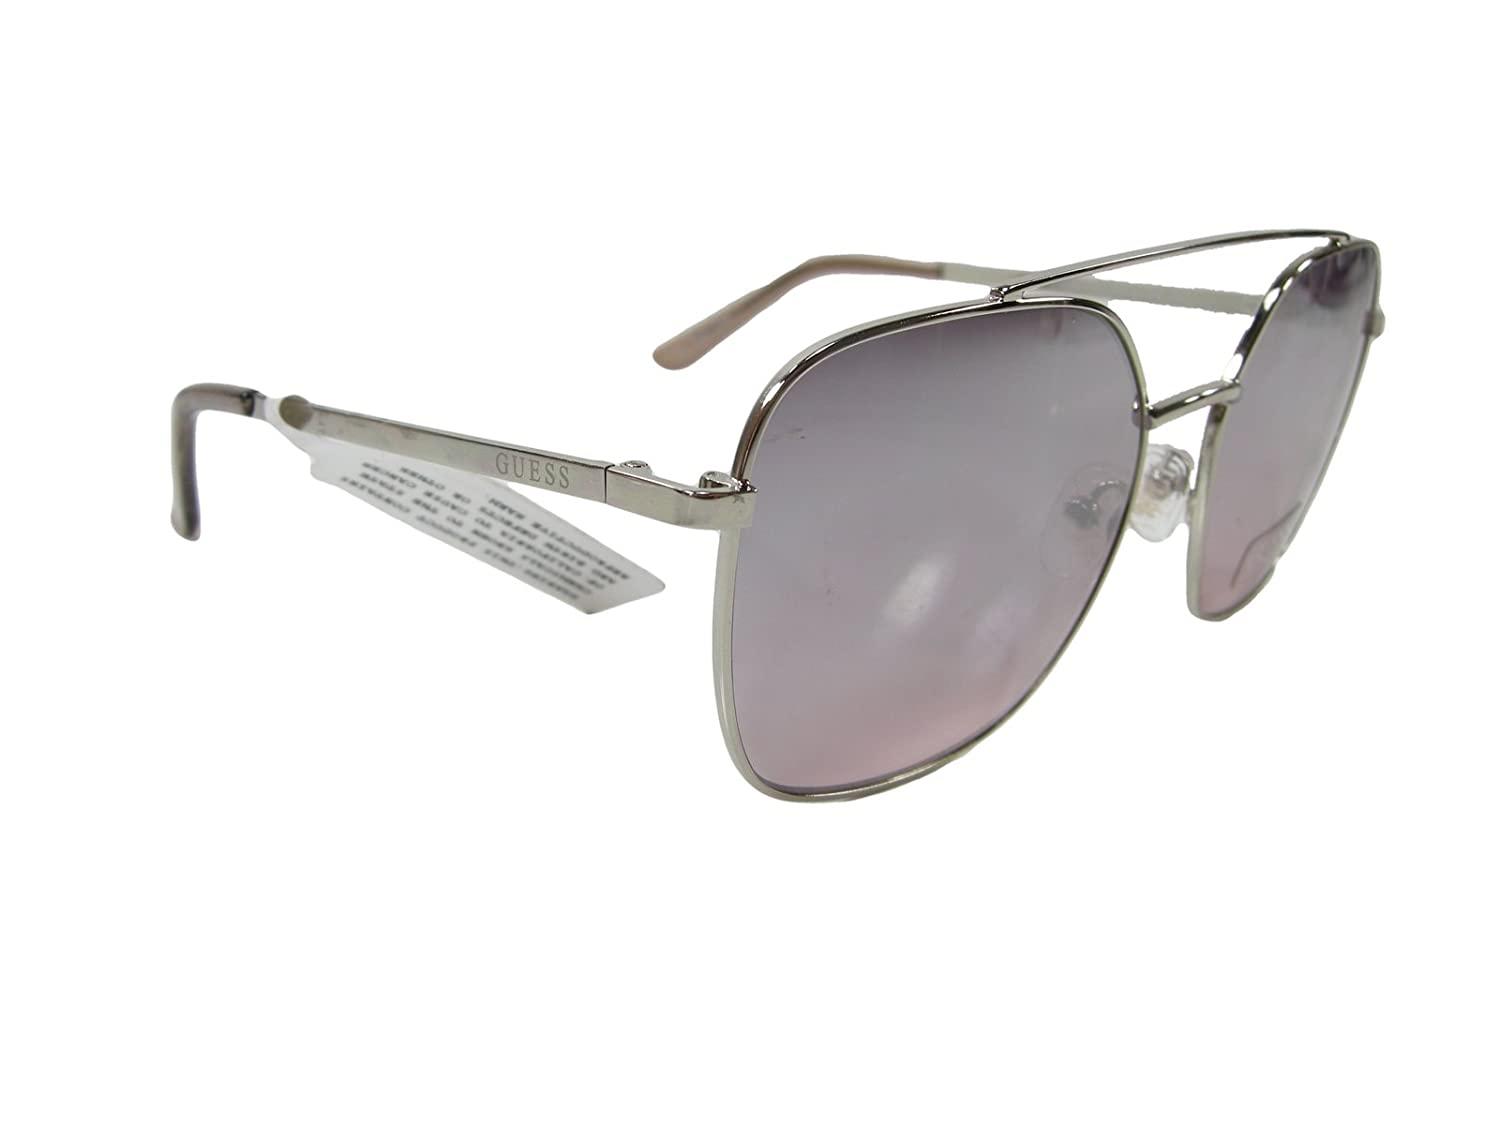 6adb217829 Amazon.com  New Guess G Logo Designer Sunglasses Silver Authentic Aviator  Eye Ware  Clothing